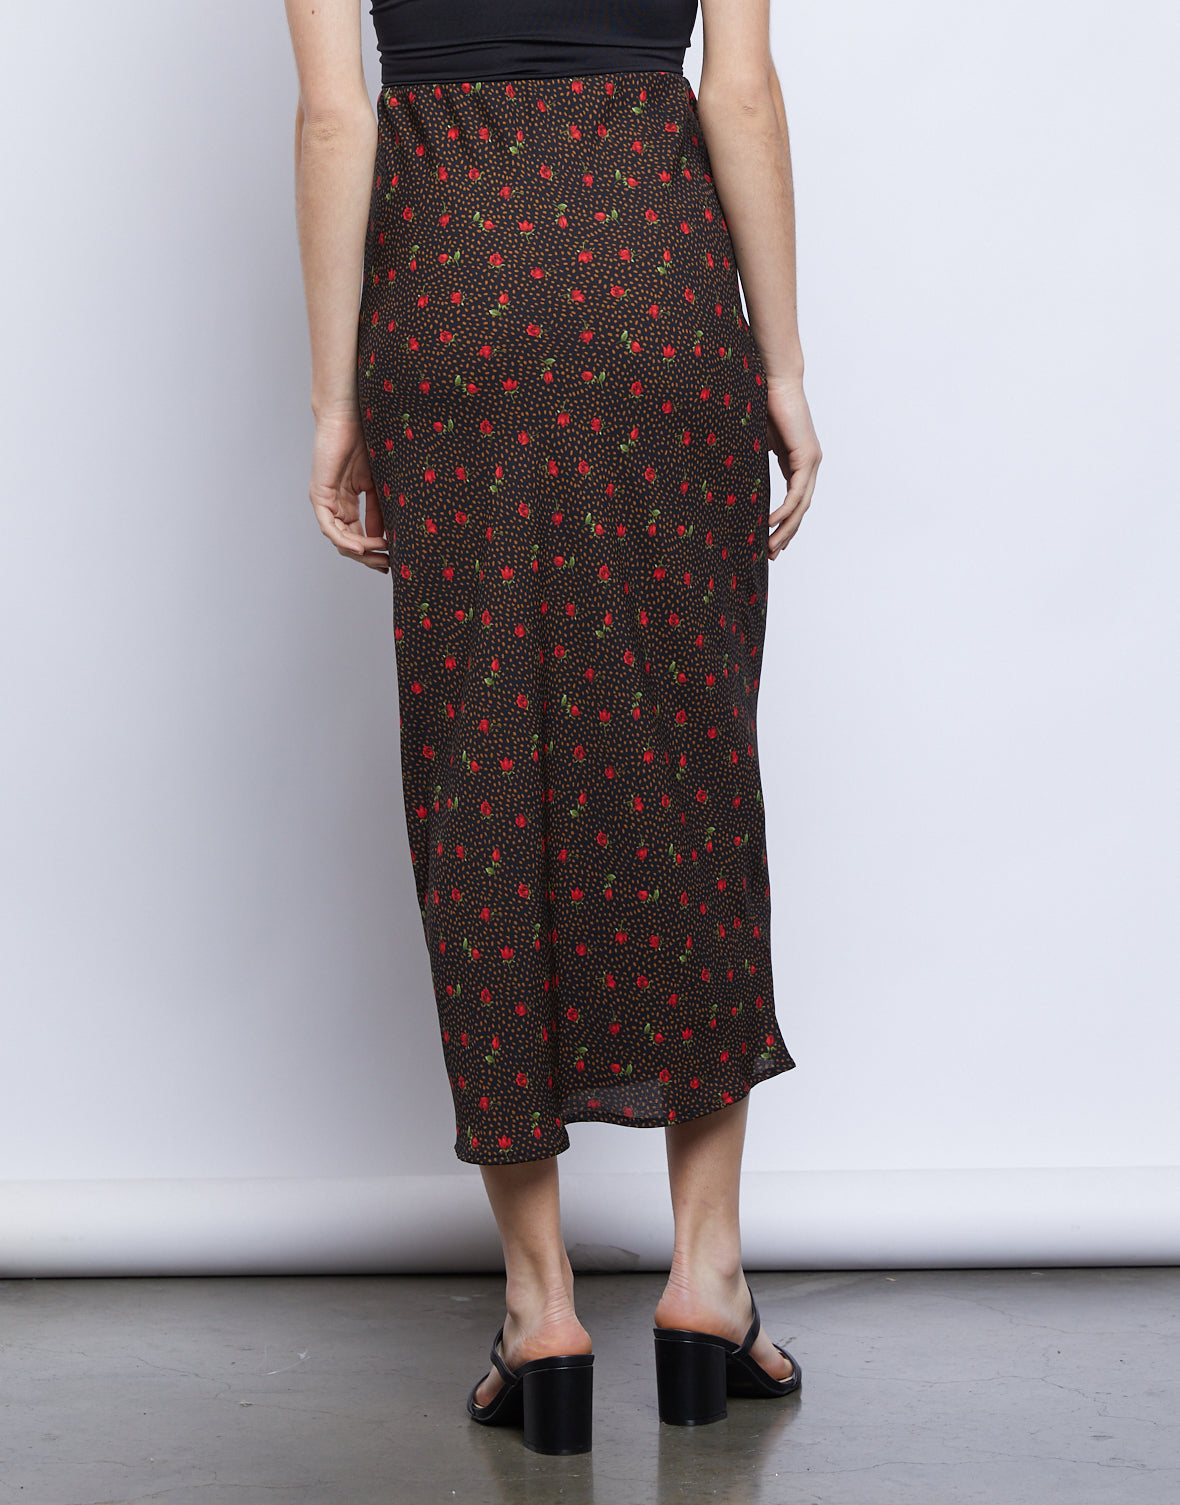 Marissa Patterned Midi Skirt